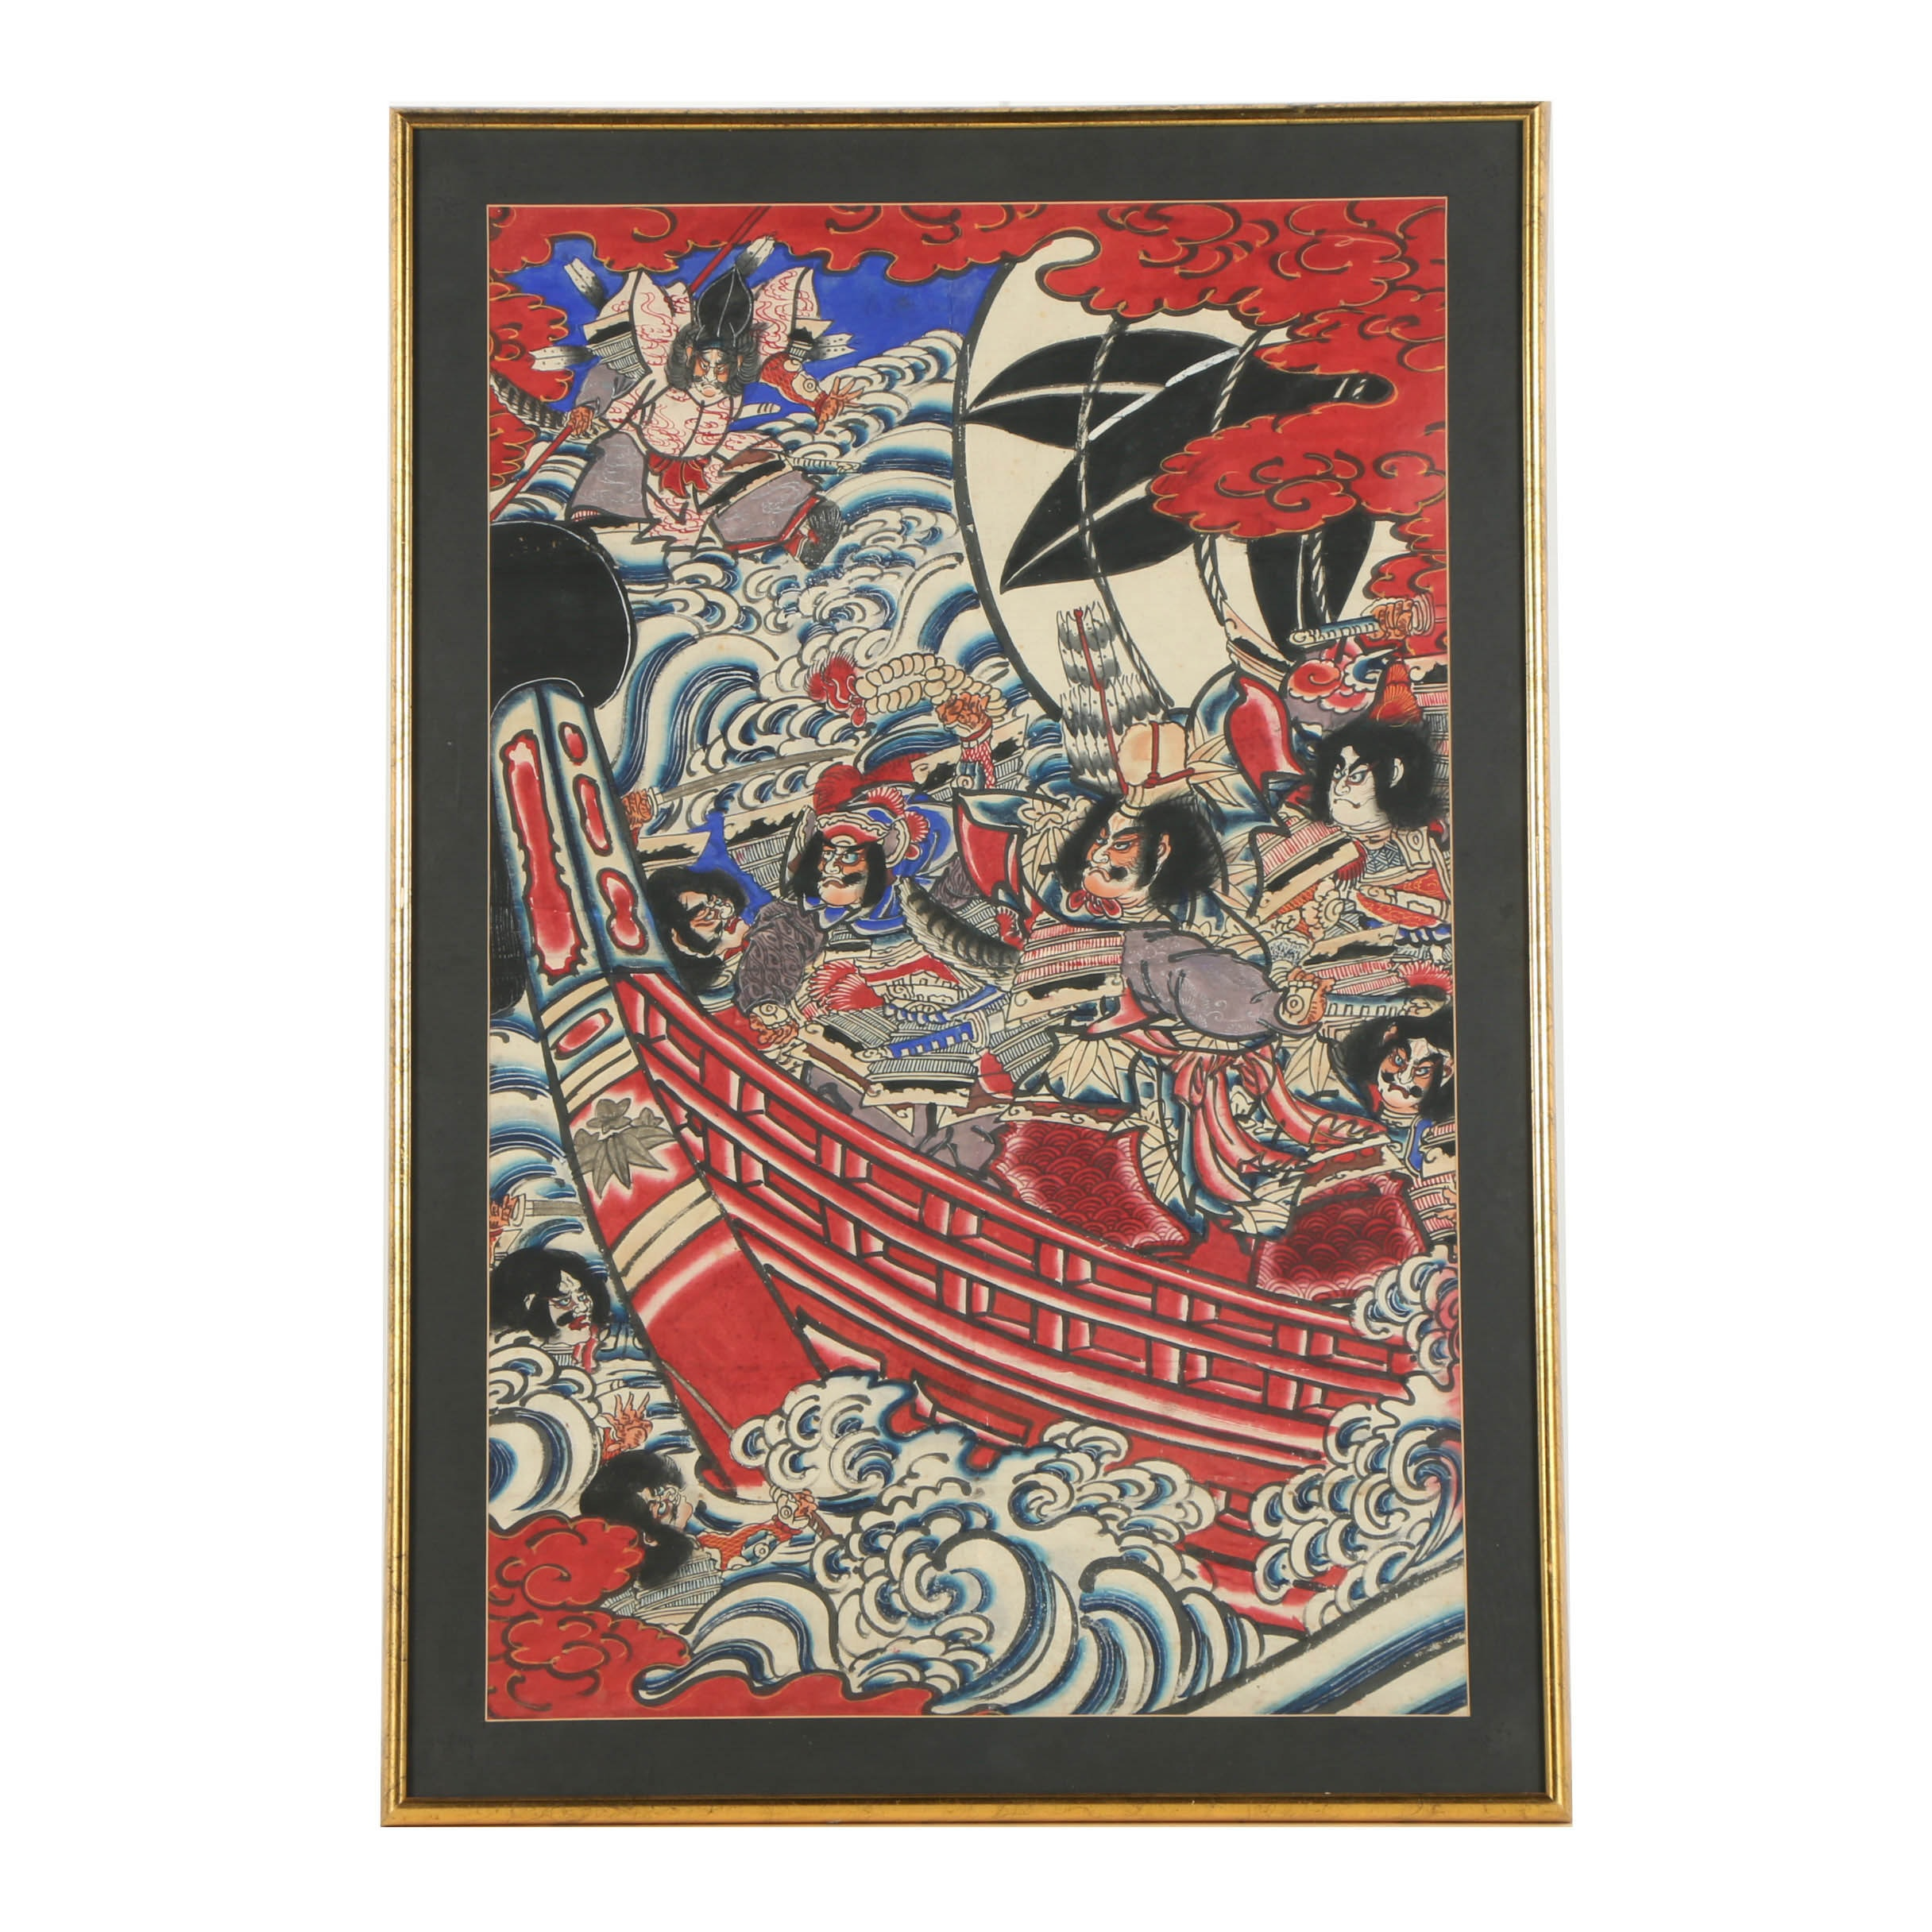 Japanese Watercolor Painting on Rice Paper of Theatrical Battle Scene